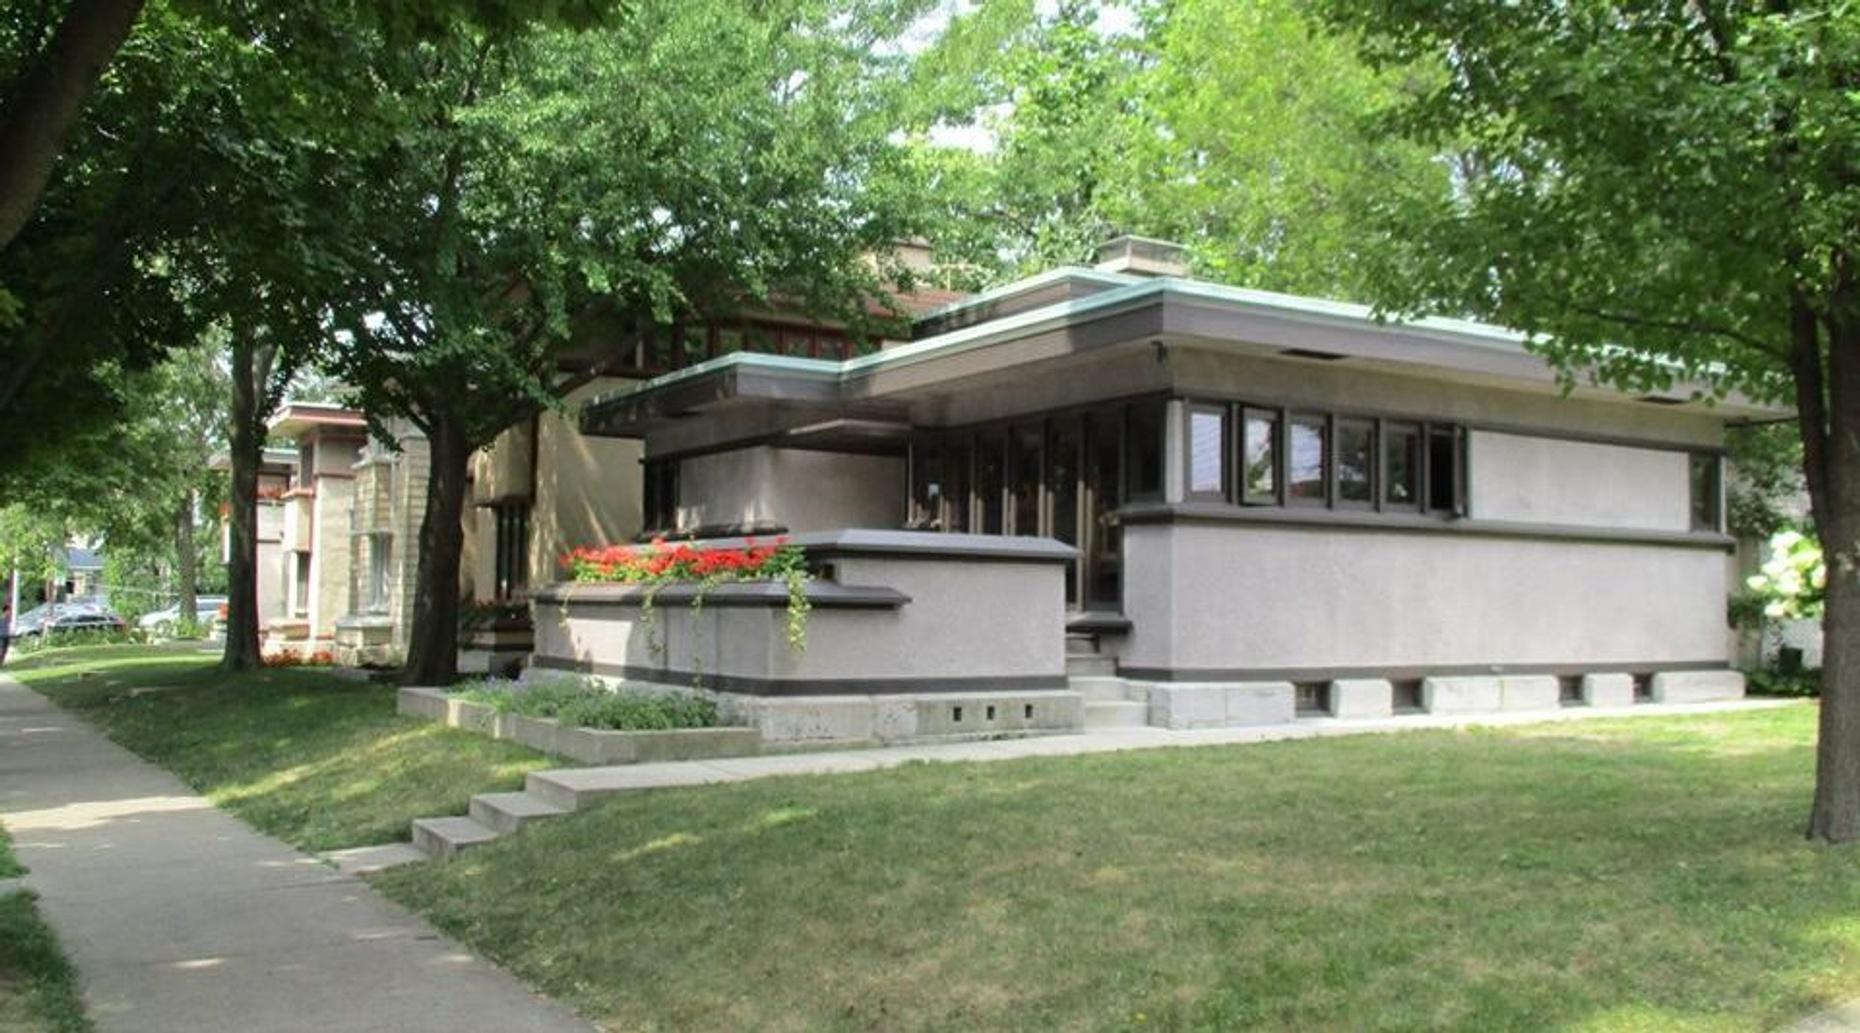 Tour of Frank Lloyd Wright's System-Built Homes in Milwaukee